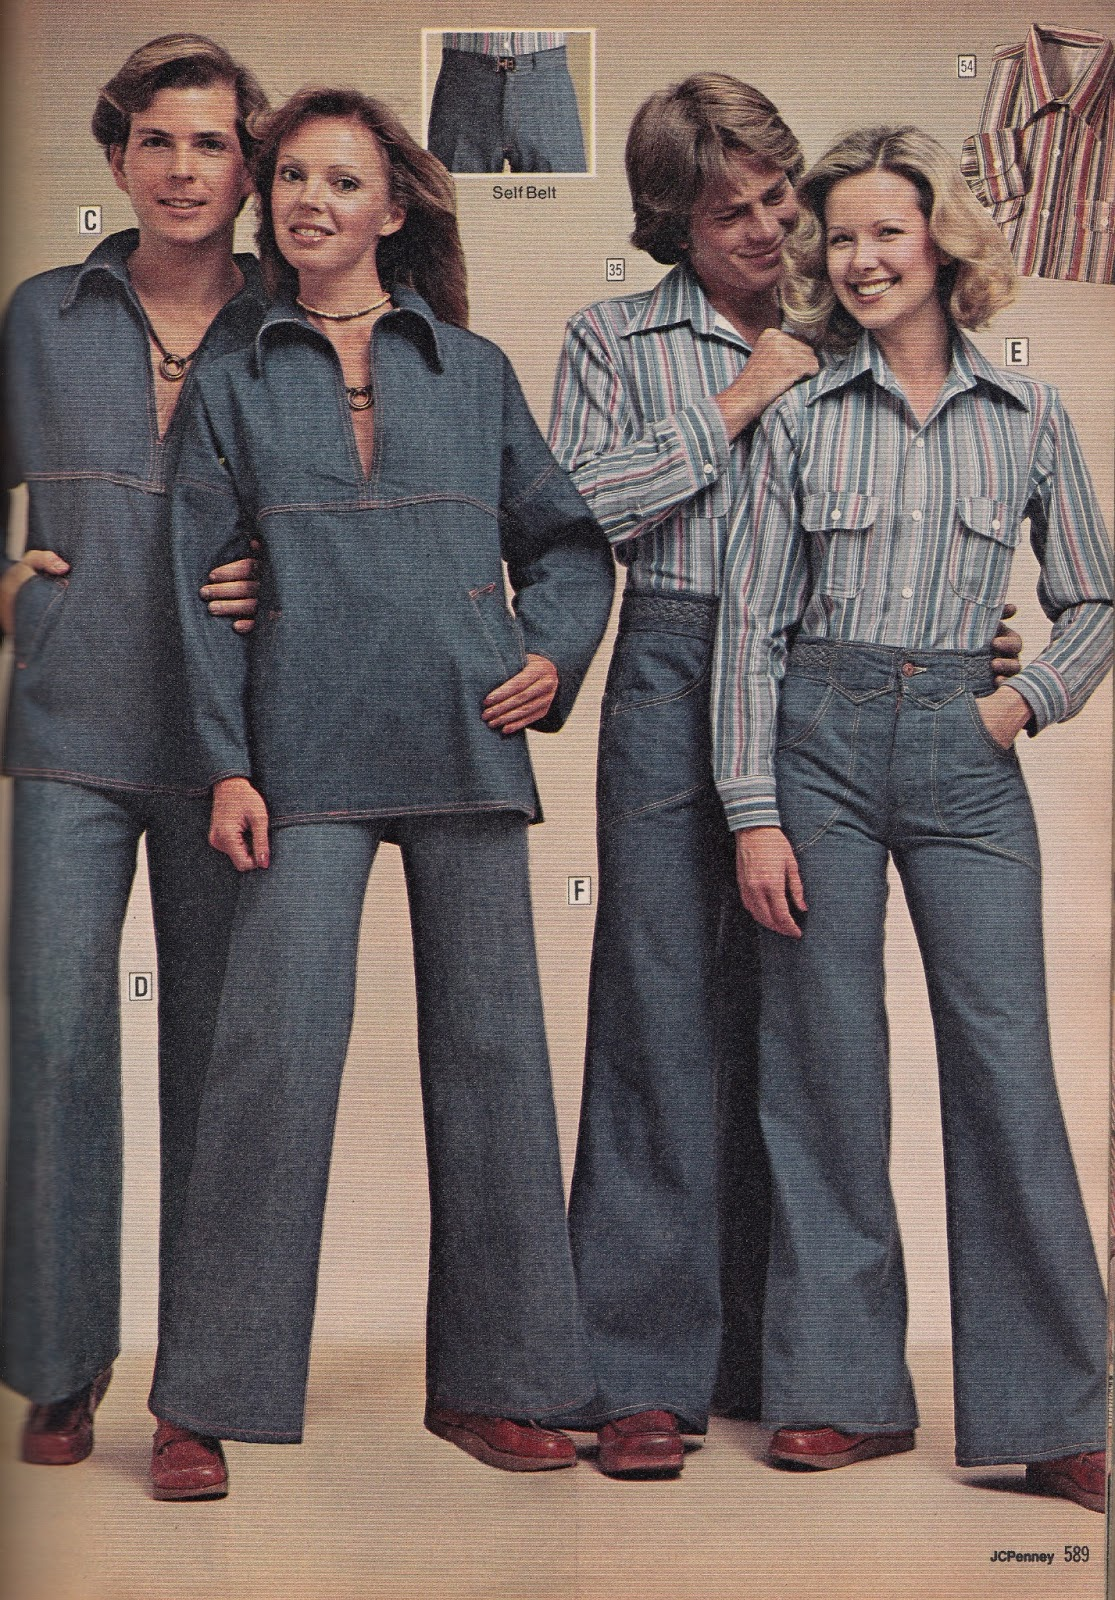 Kathy Loghry Blogspot: That's So 70s: Fashion as Couples ...